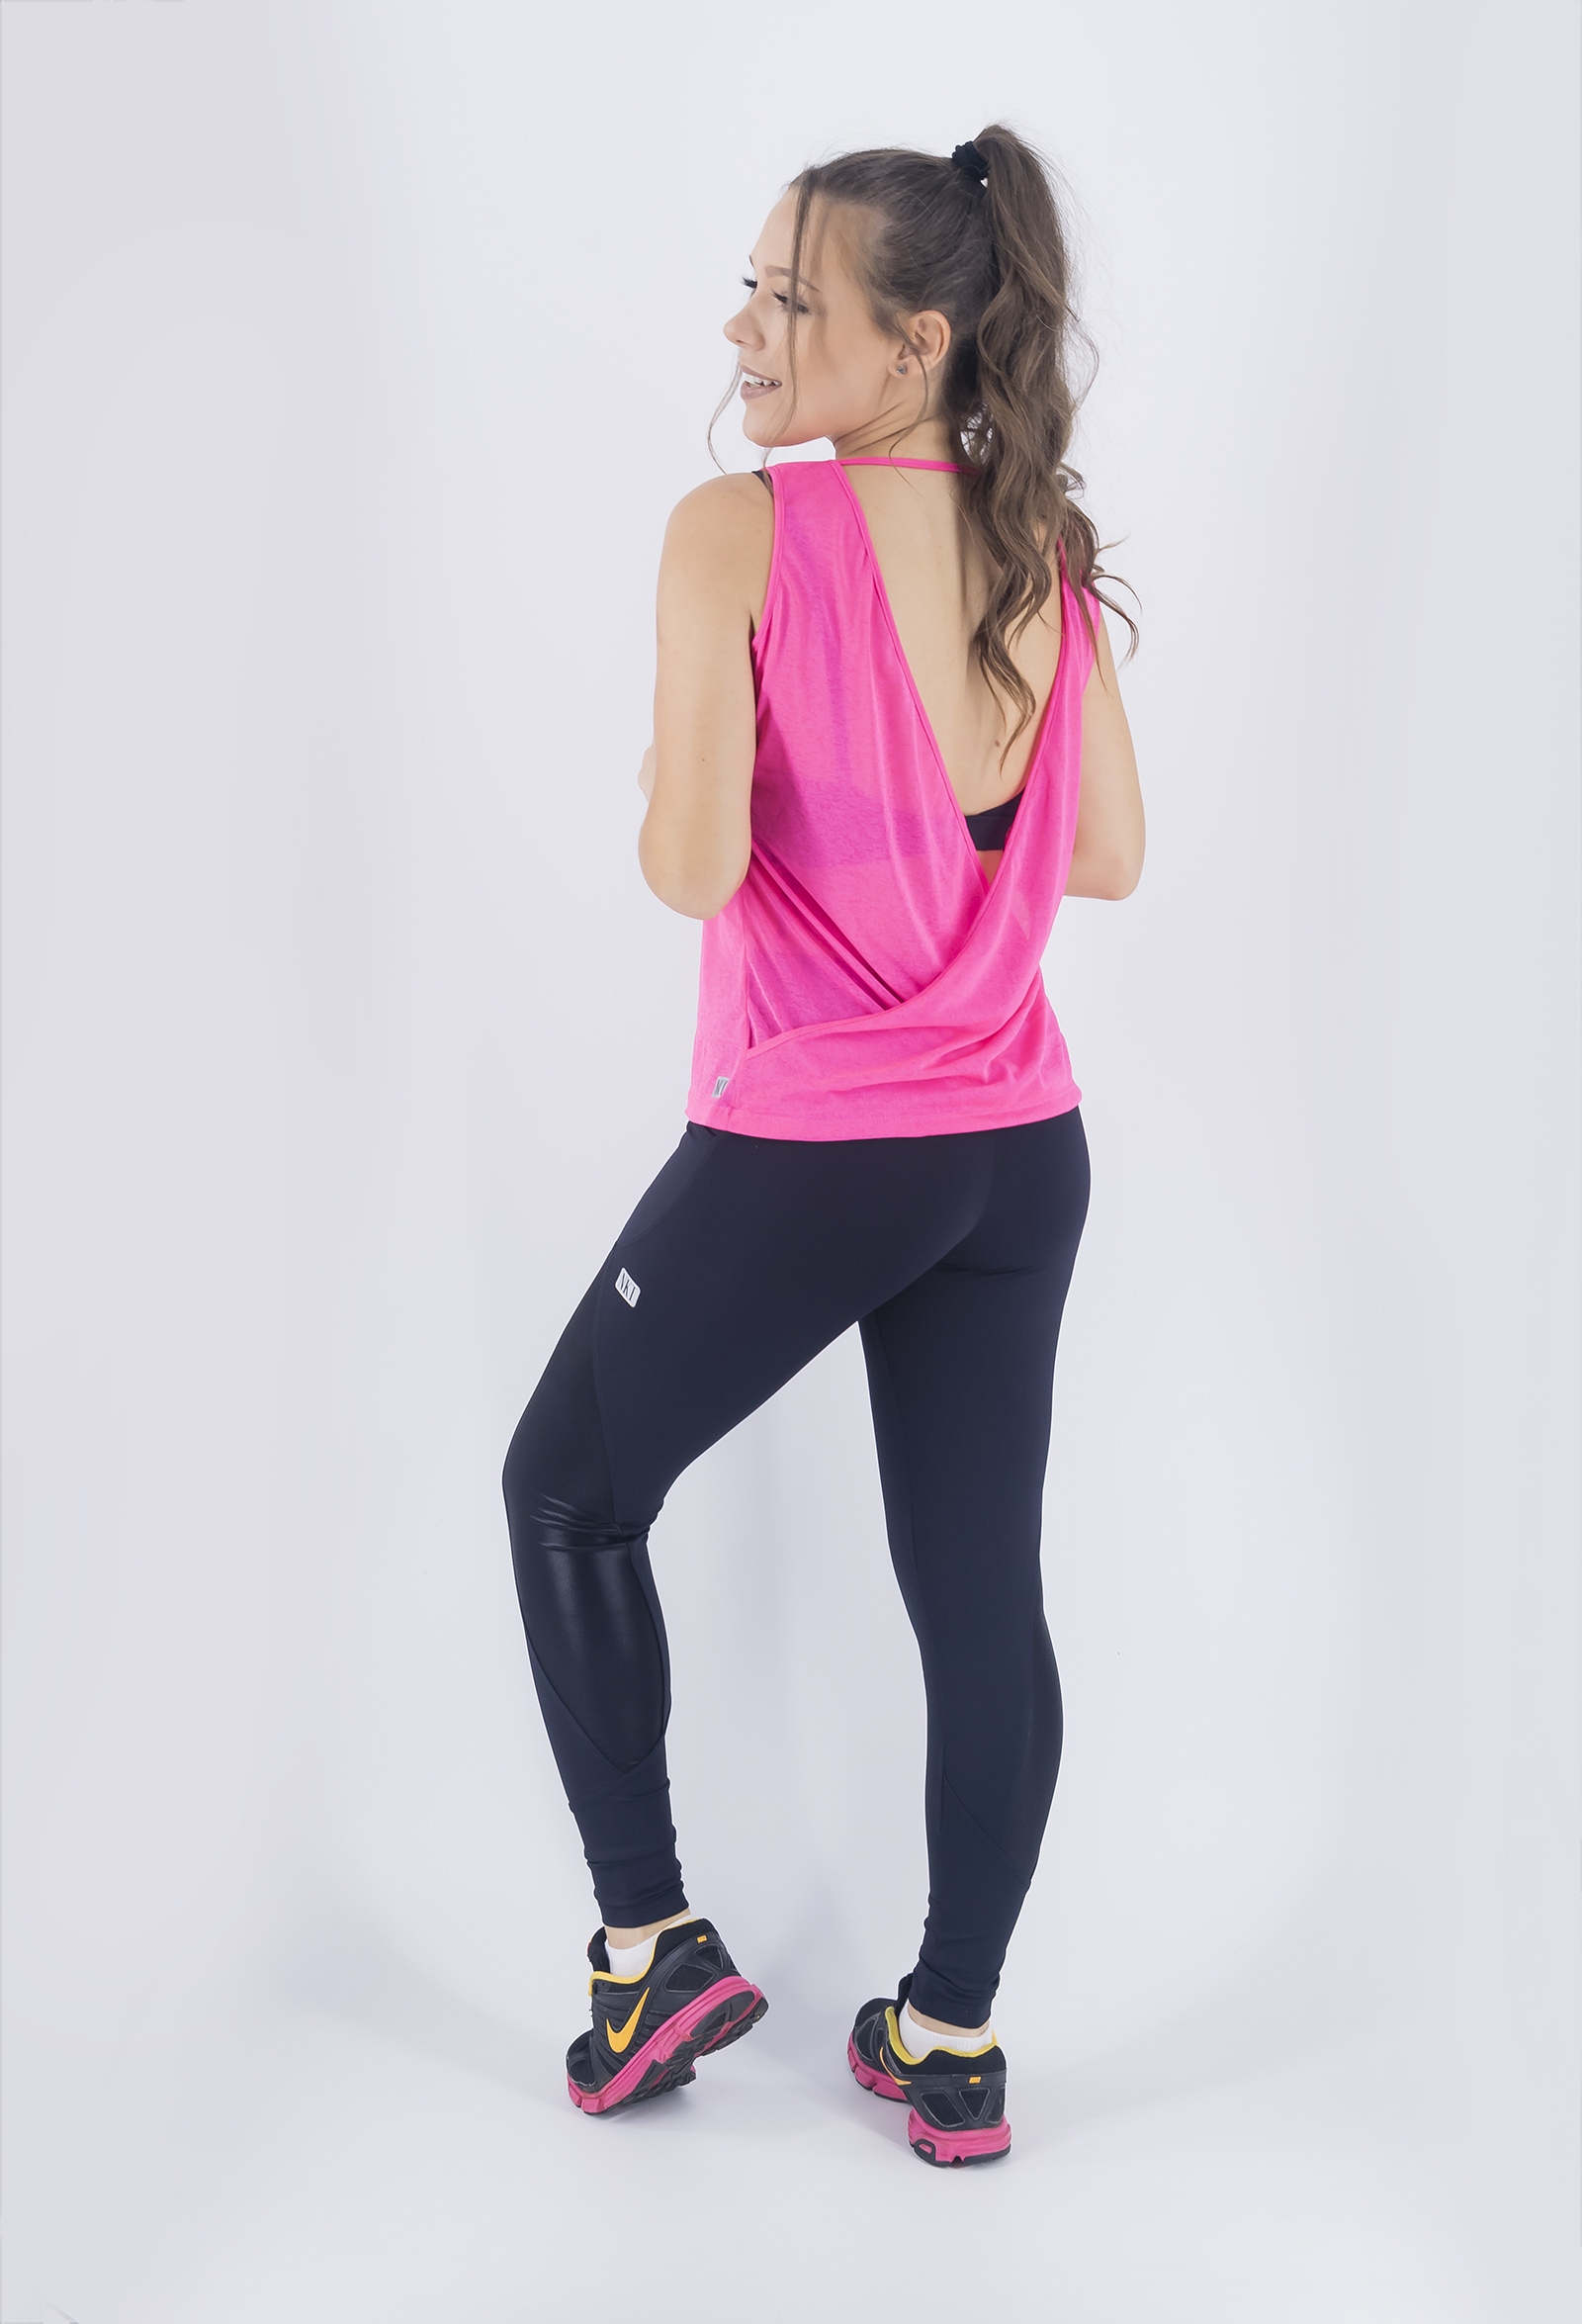 Regata Unique Pink New, Coleção Just For You - NKT Fitwear Moda Fitness